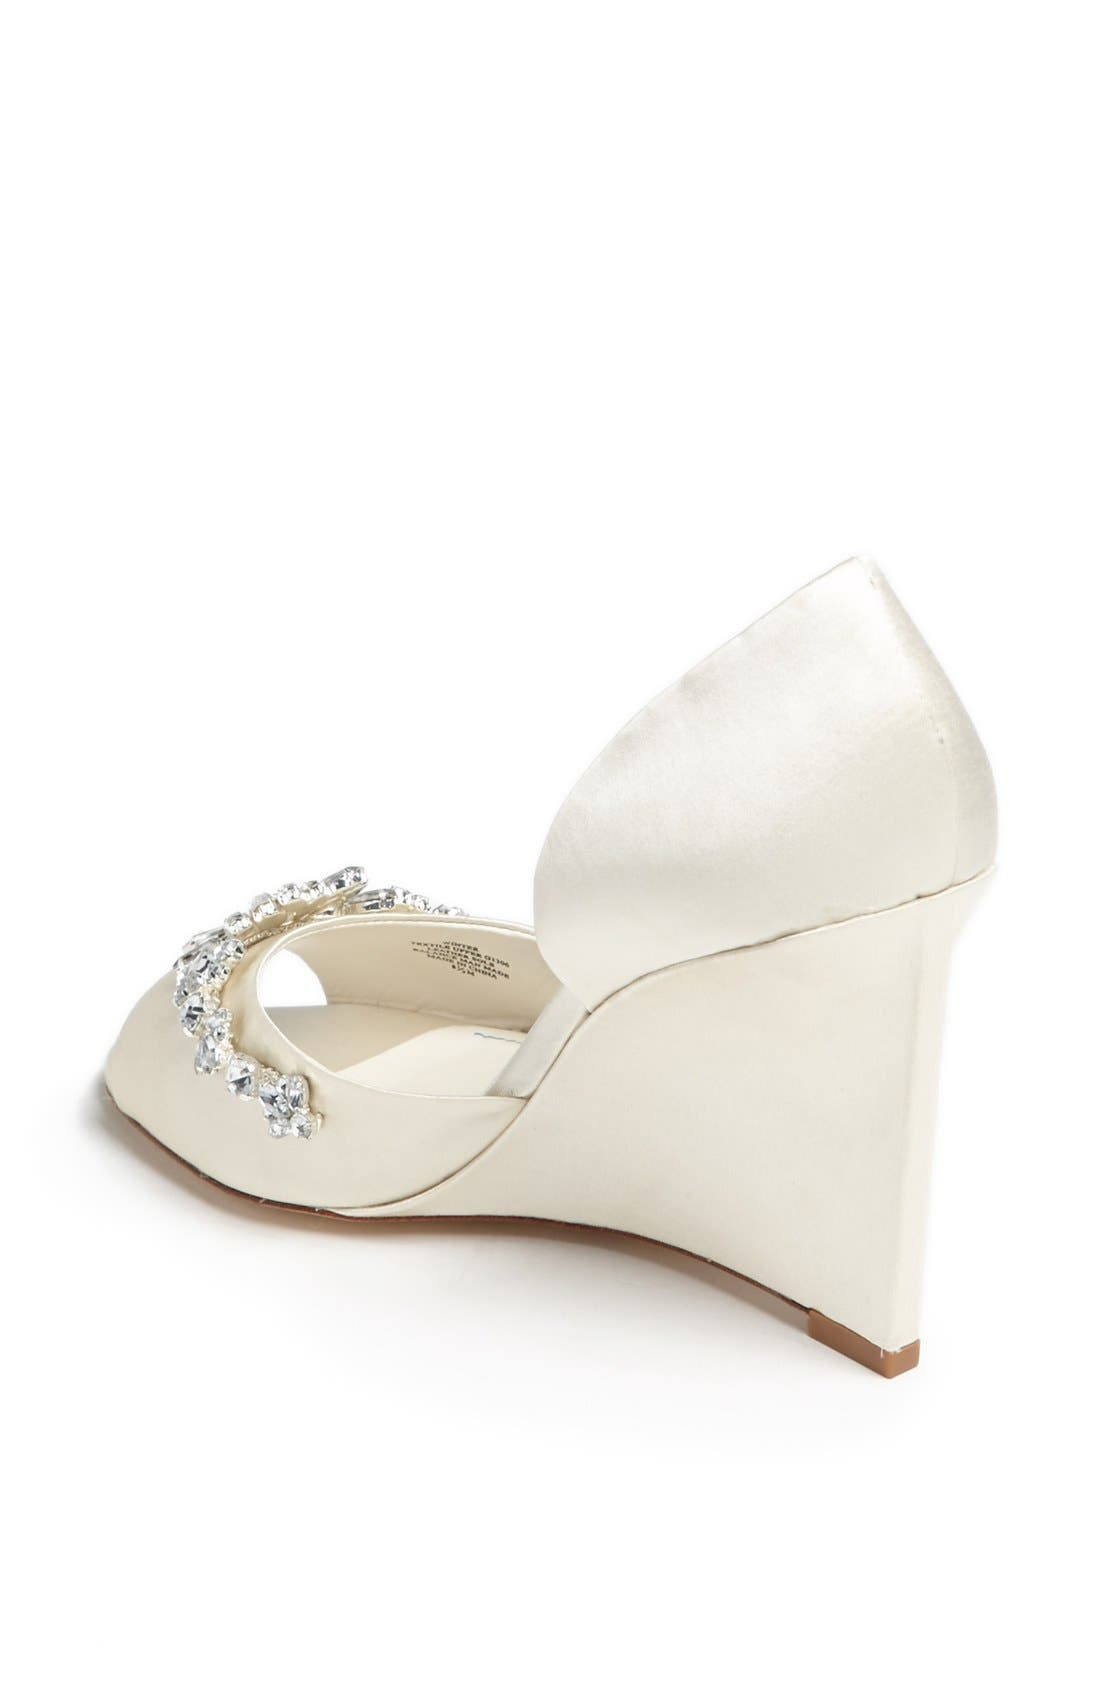 'Winter' Wedge Sandal,                             Alternate thumbnail 2, color,                             Ivory Satin